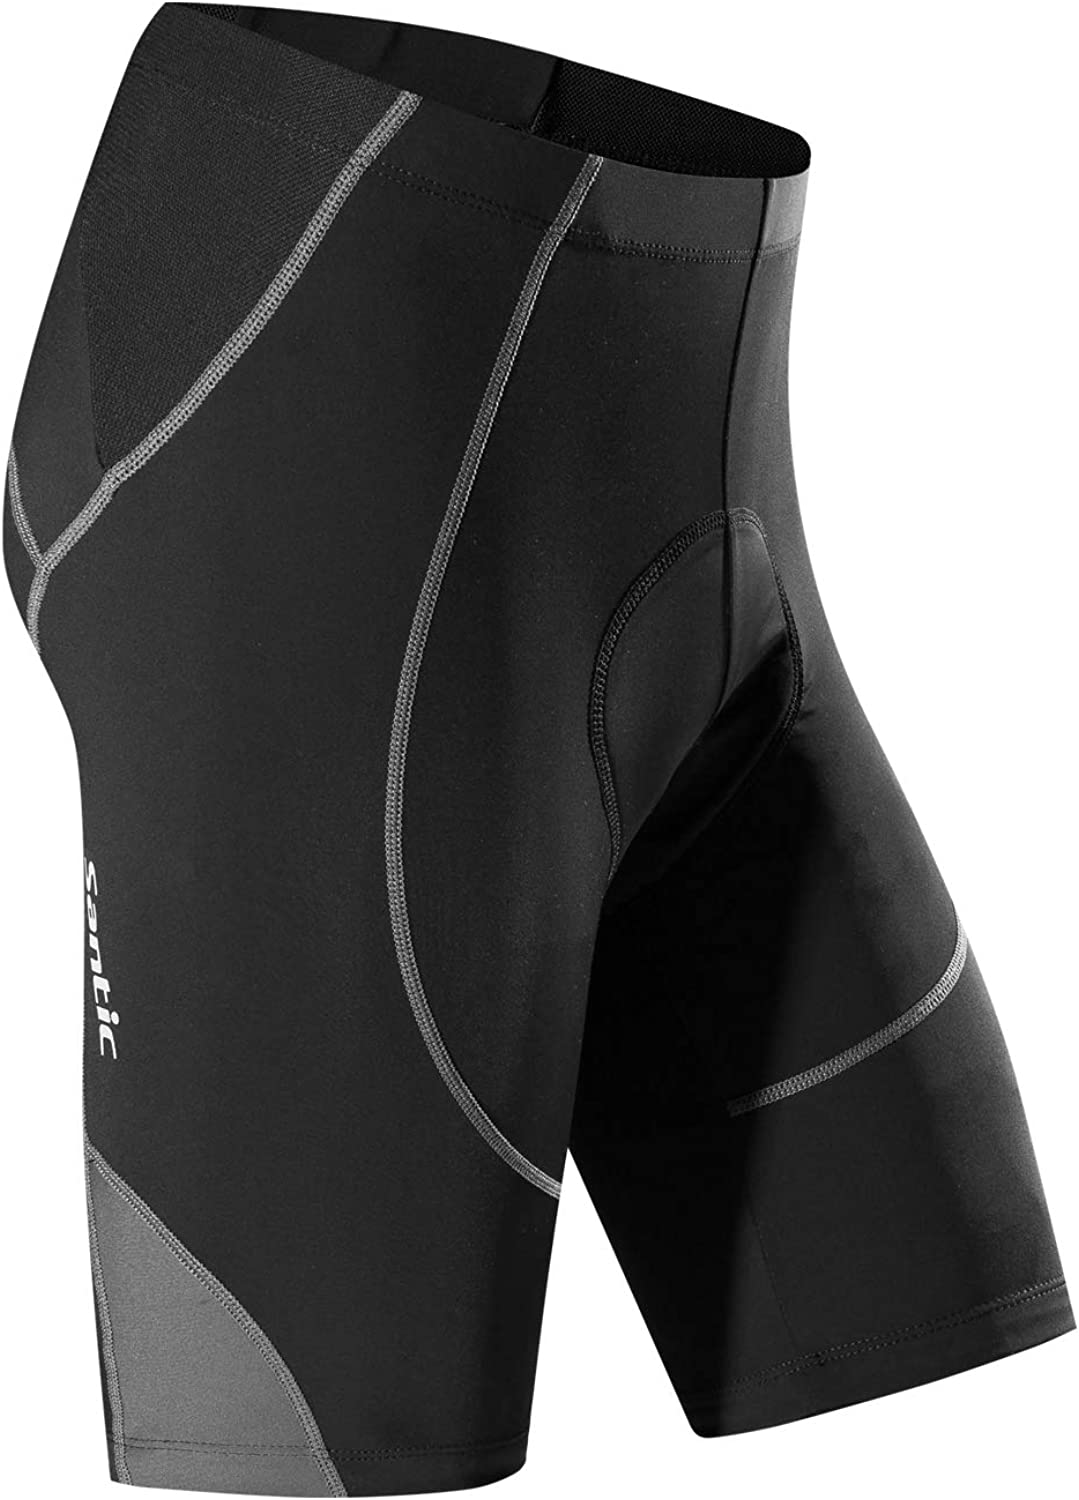 Santic We OFFer at cheap prices Cycling Shorts Men's Large discharge sale Bike 4D Bicycle Biking Pants Tights